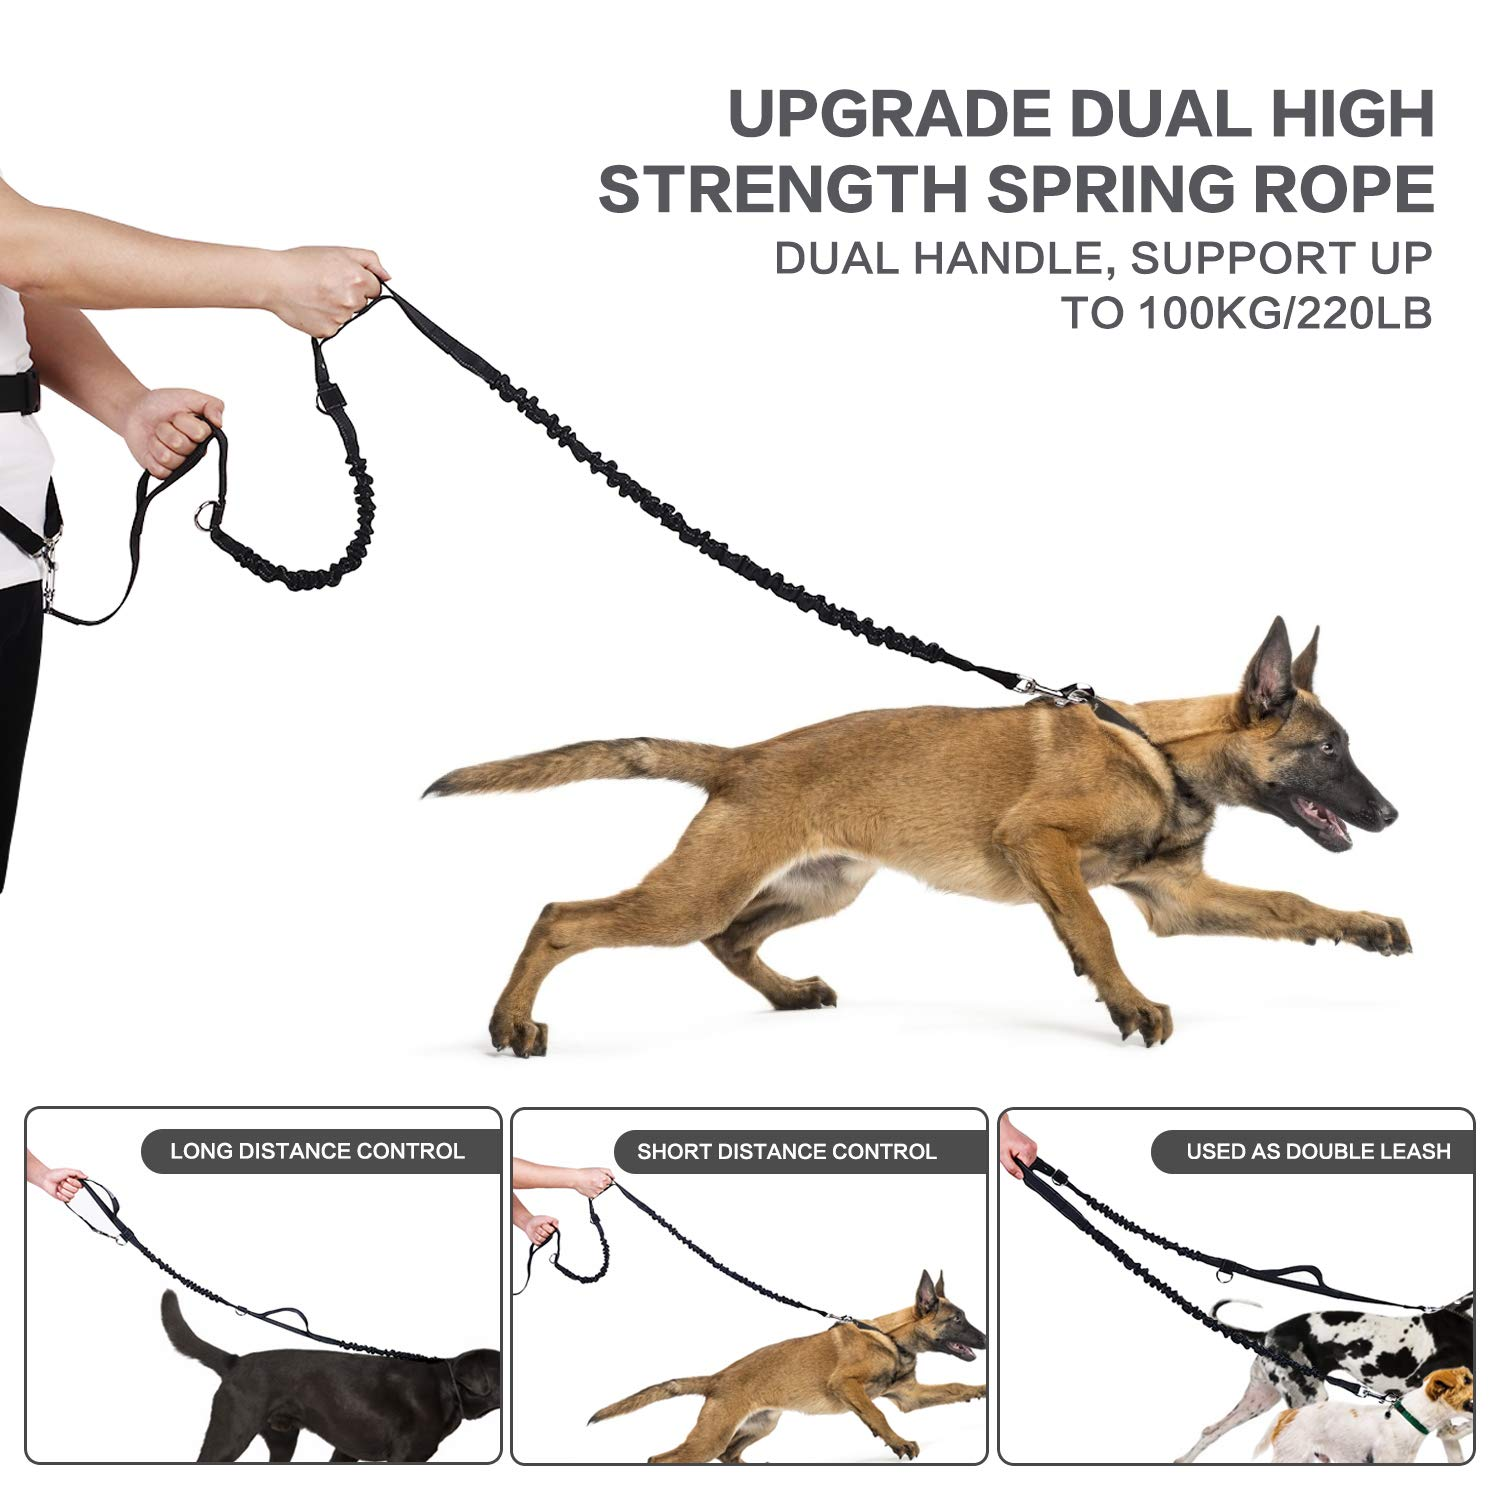 Pecute Hands Free Dog Leash with Pouch, Comfortable Shock Absorbing Reflective Bungee Dog Walking & Training Leash Great for Medium & Large Dogs up to 220lbs